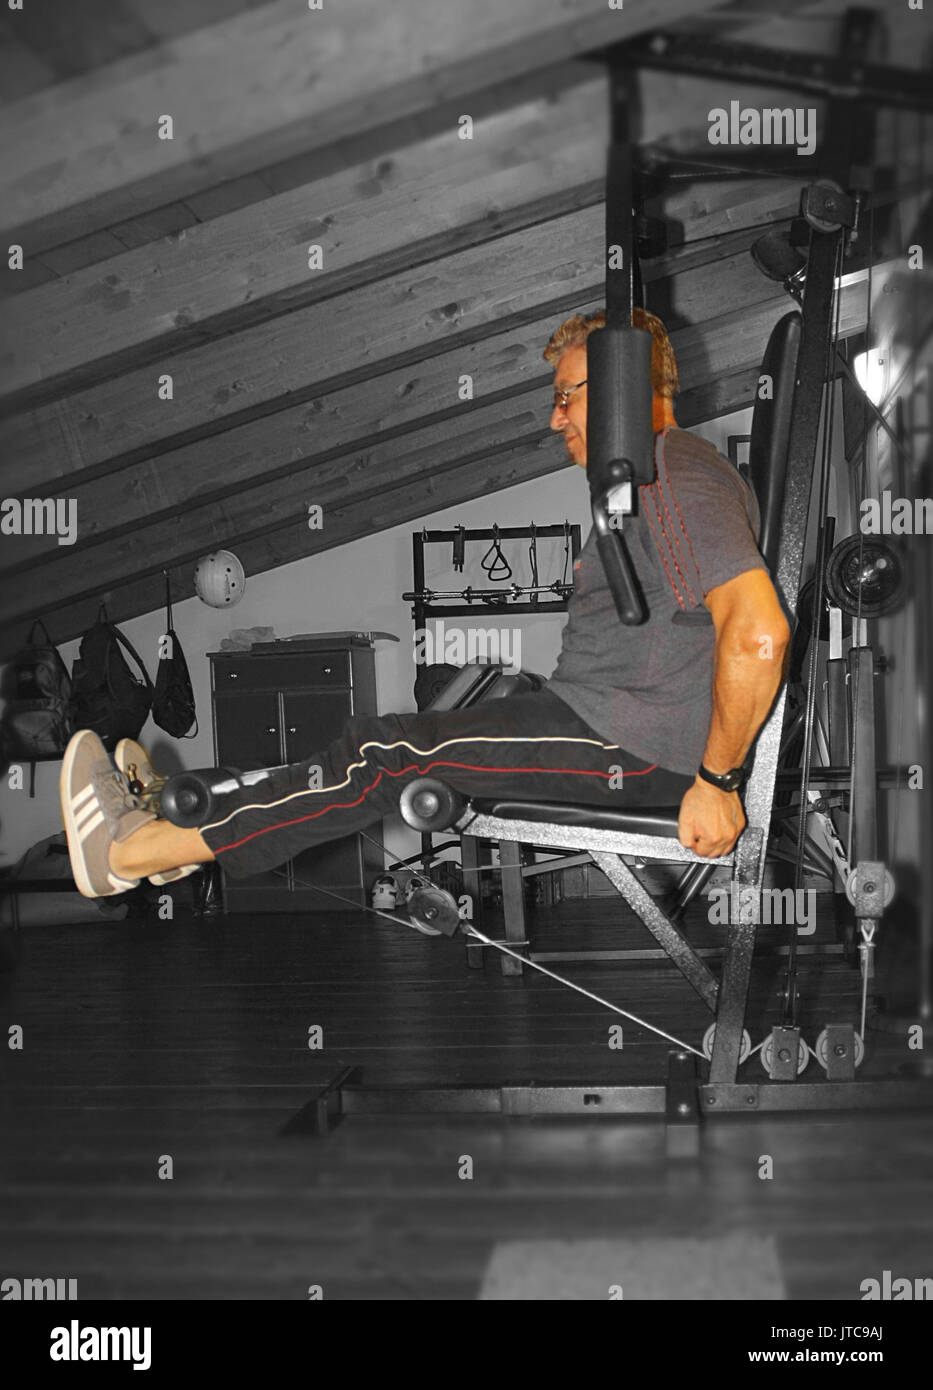 Home gym in the attic, Leg Extension - Stock Image